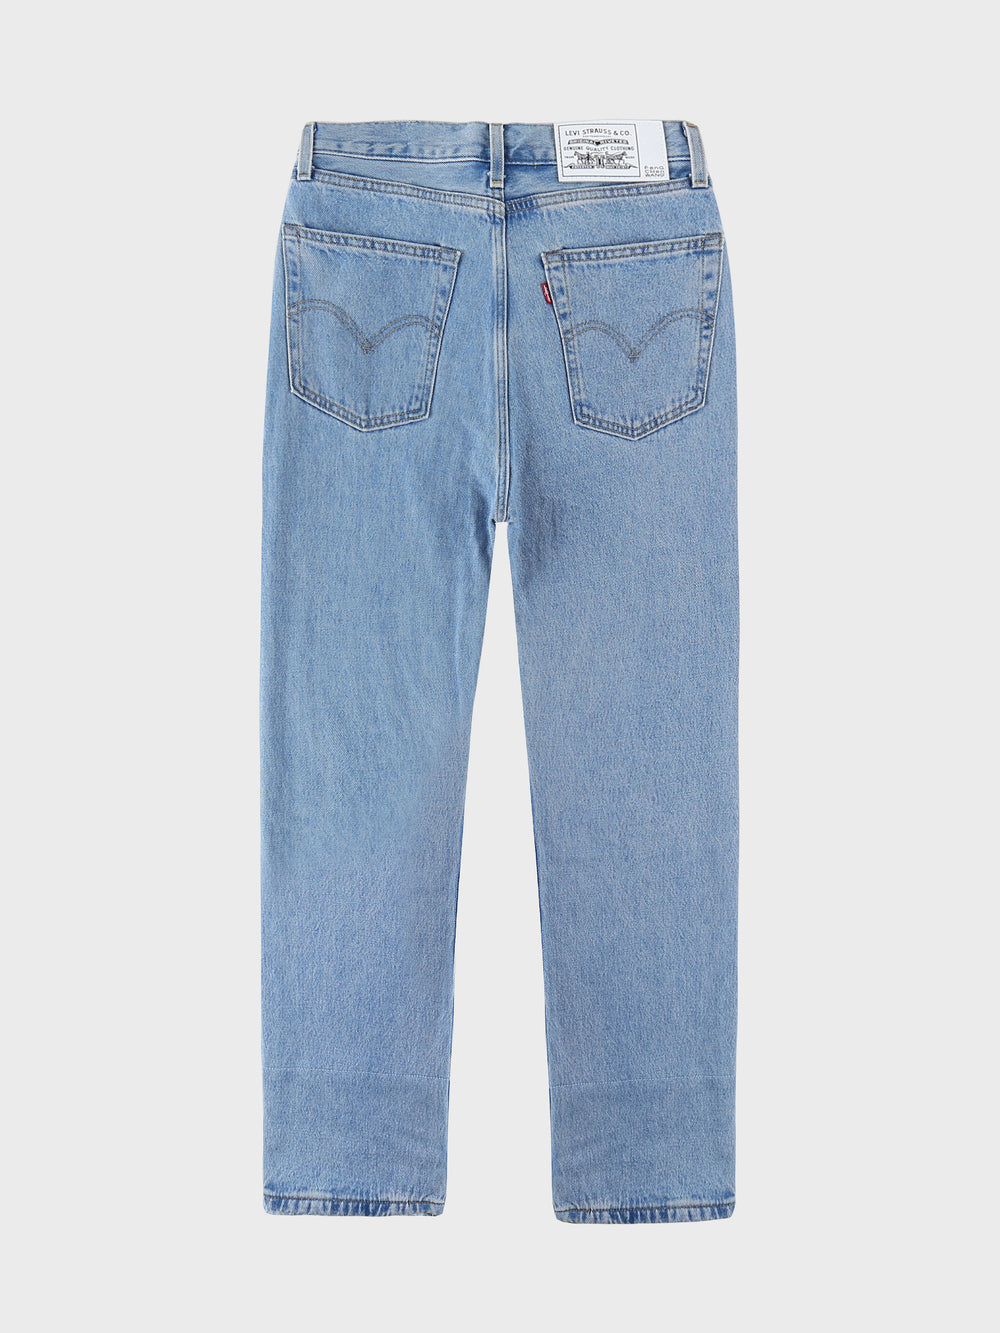 Feng Chen Wang × Levi's > Embroidered Straight Leg Jeans